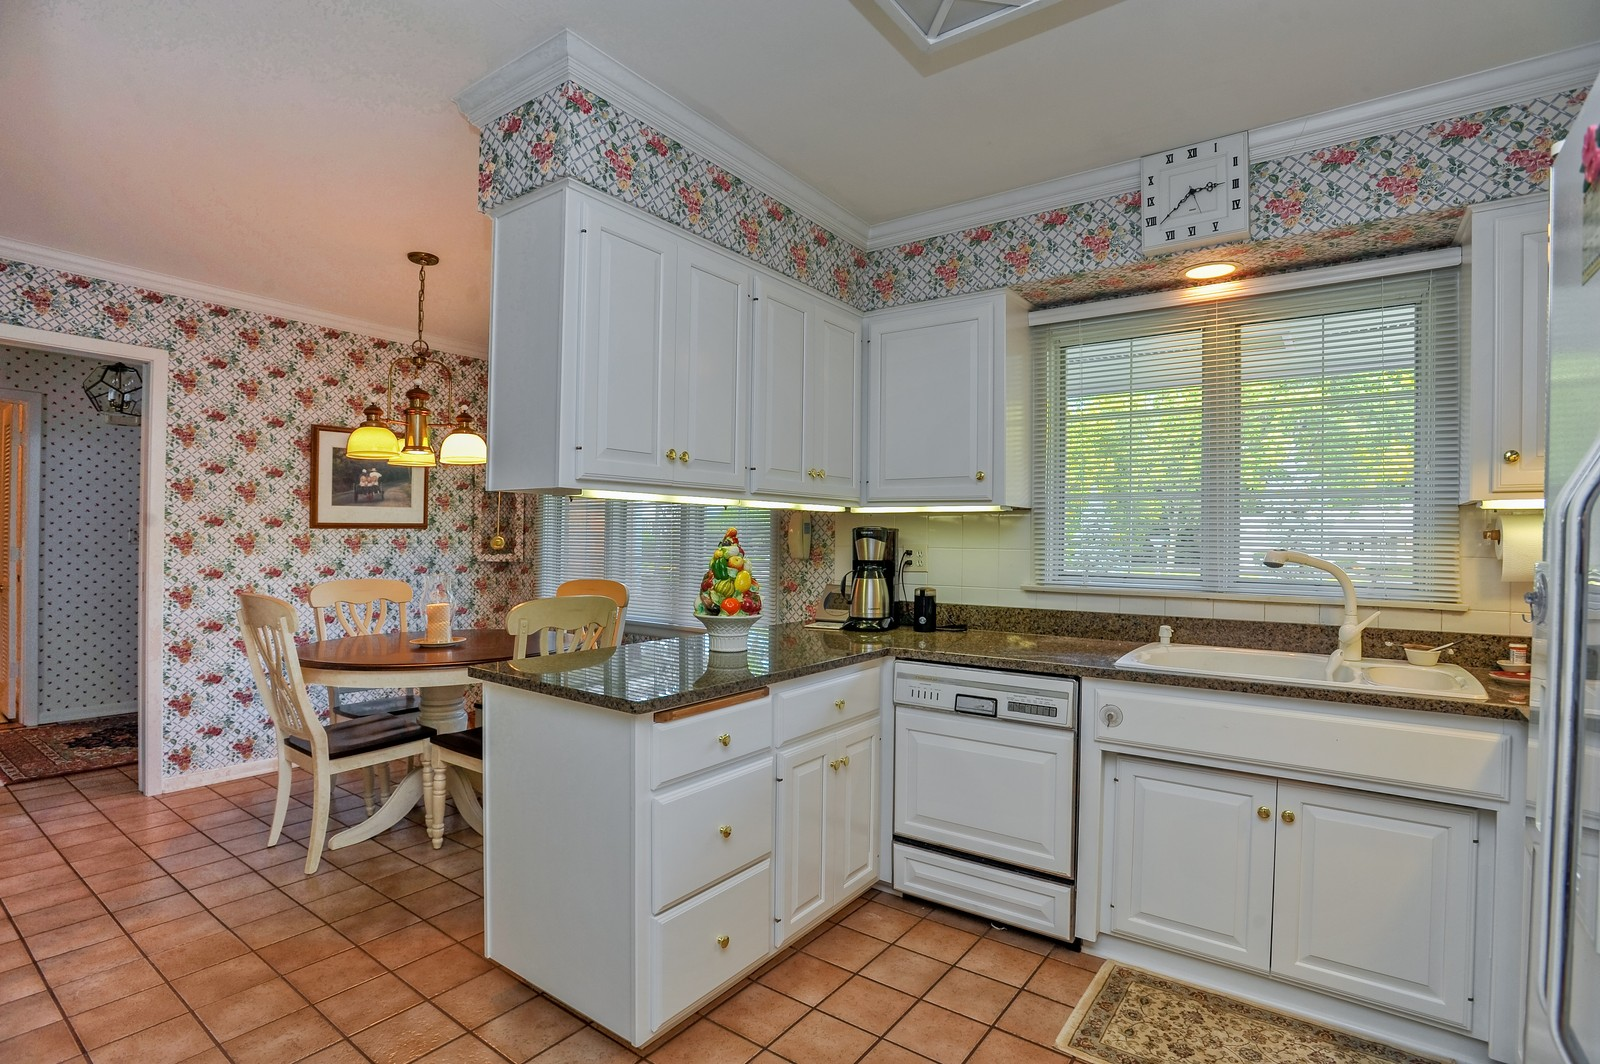 Real Estate Photography - 305 Sunset Dr, Northfield, IL, 60093 - Kitchen / Breakfast Room